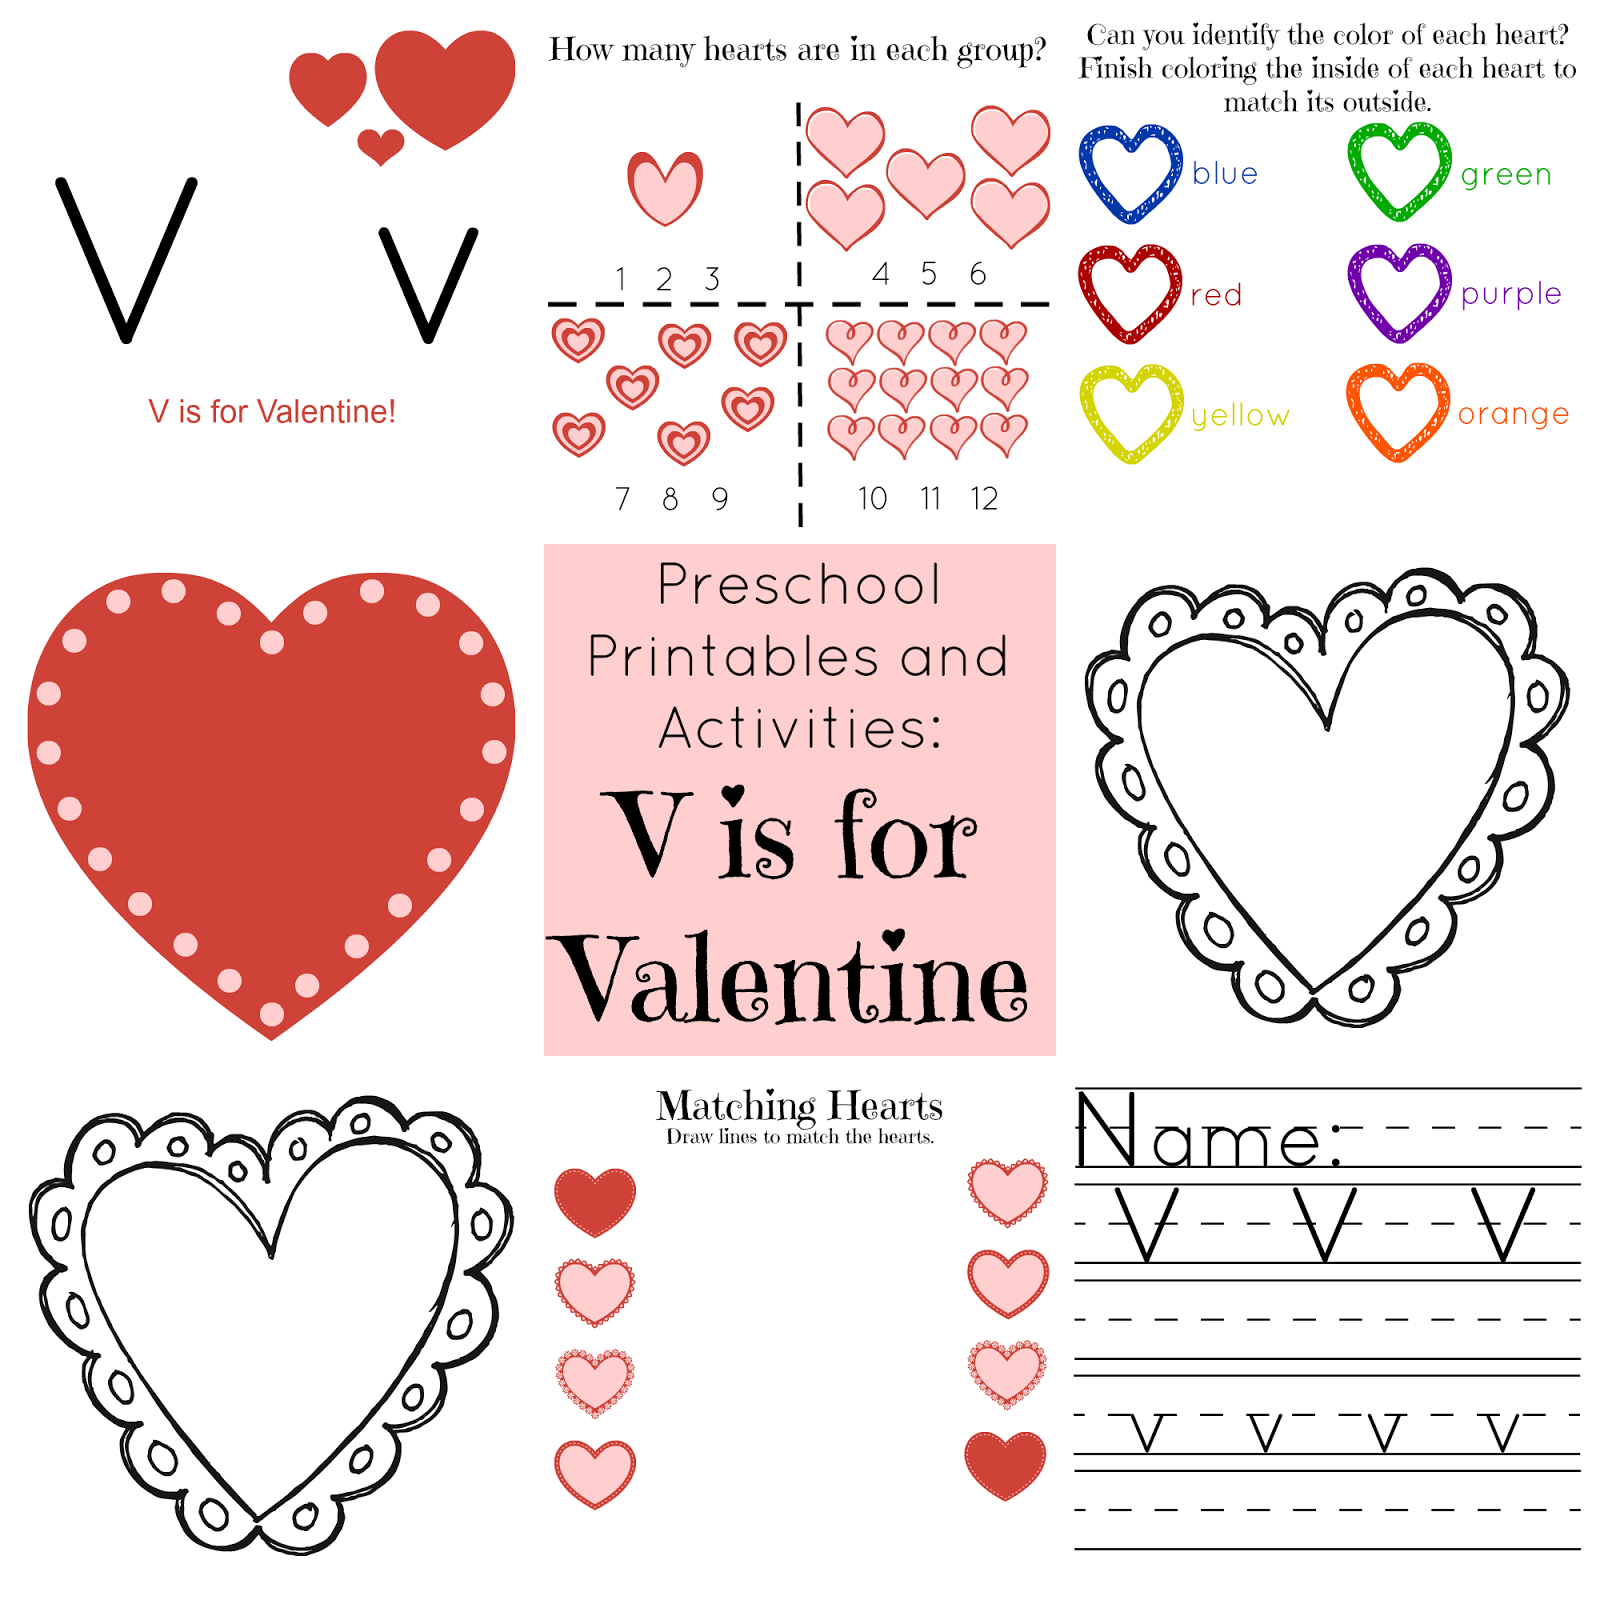 the life of jennifer dawn v is for valentine preschool printables and activities. Black Bedroom Furniture Sets. Home Design Ideas